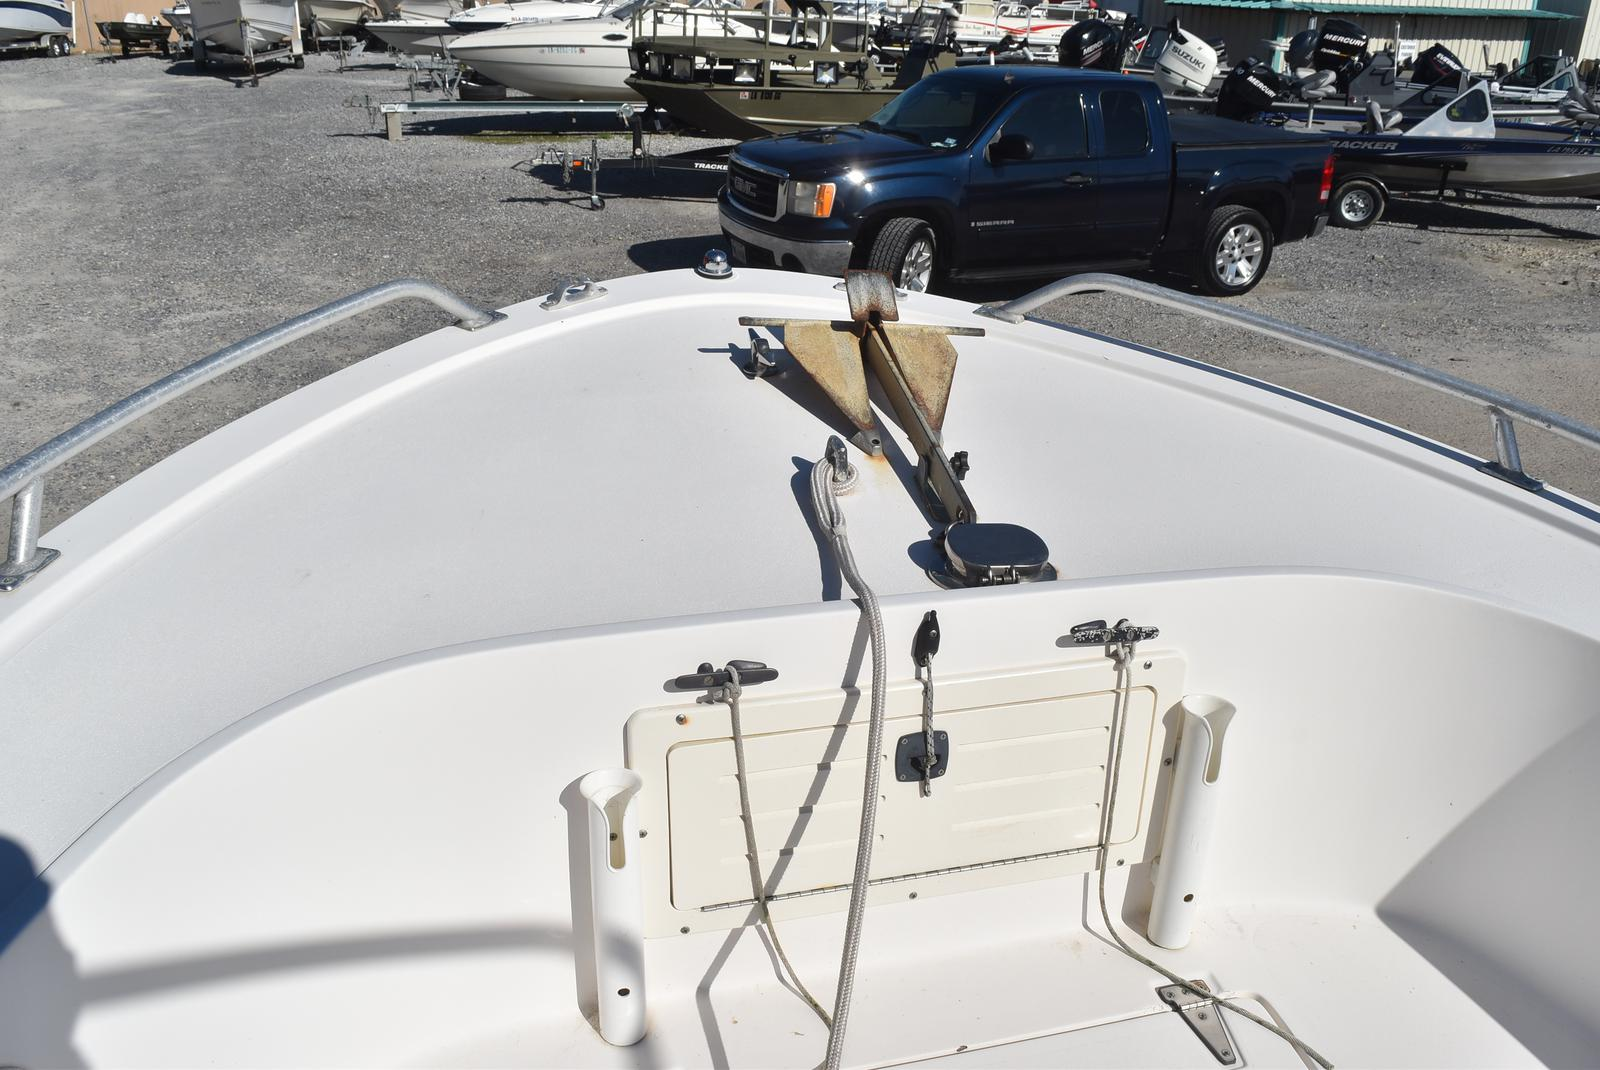 1996 Mako boat for sale, model of the boat is 22 Mako & Image # 316 of 390